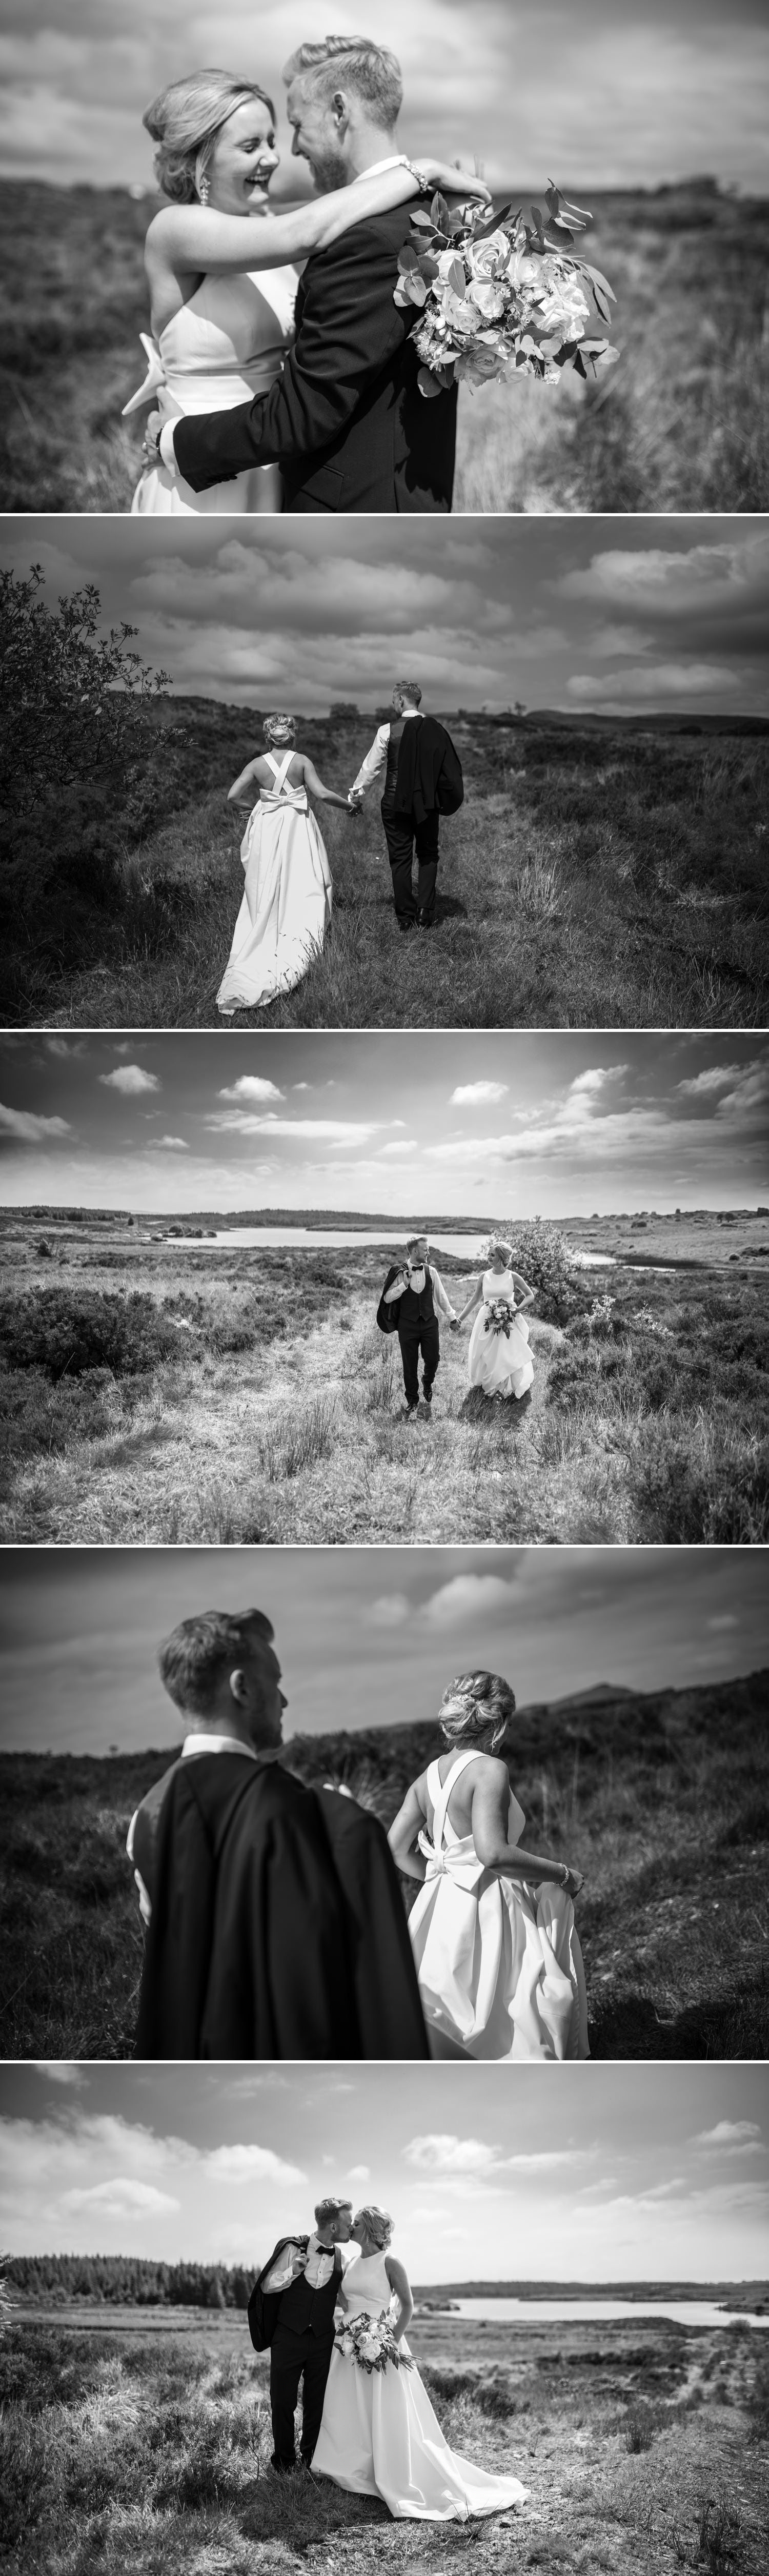 best wedding photographers northern ireland 12.jpg